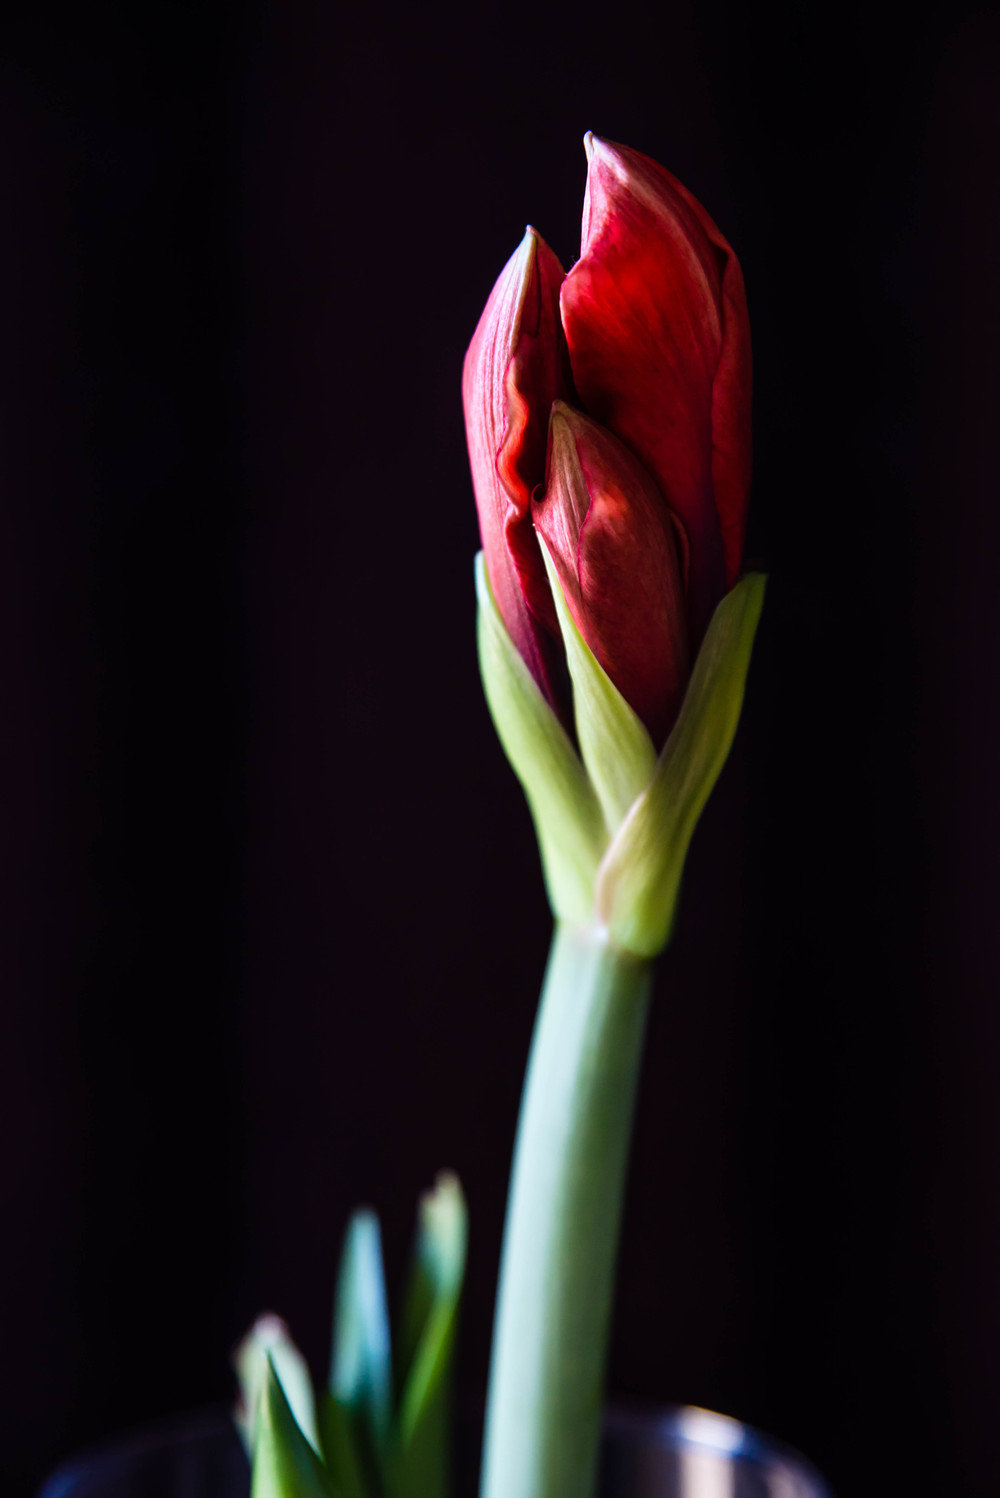 Amaryllis Bulb photograph by Stephanie Ray